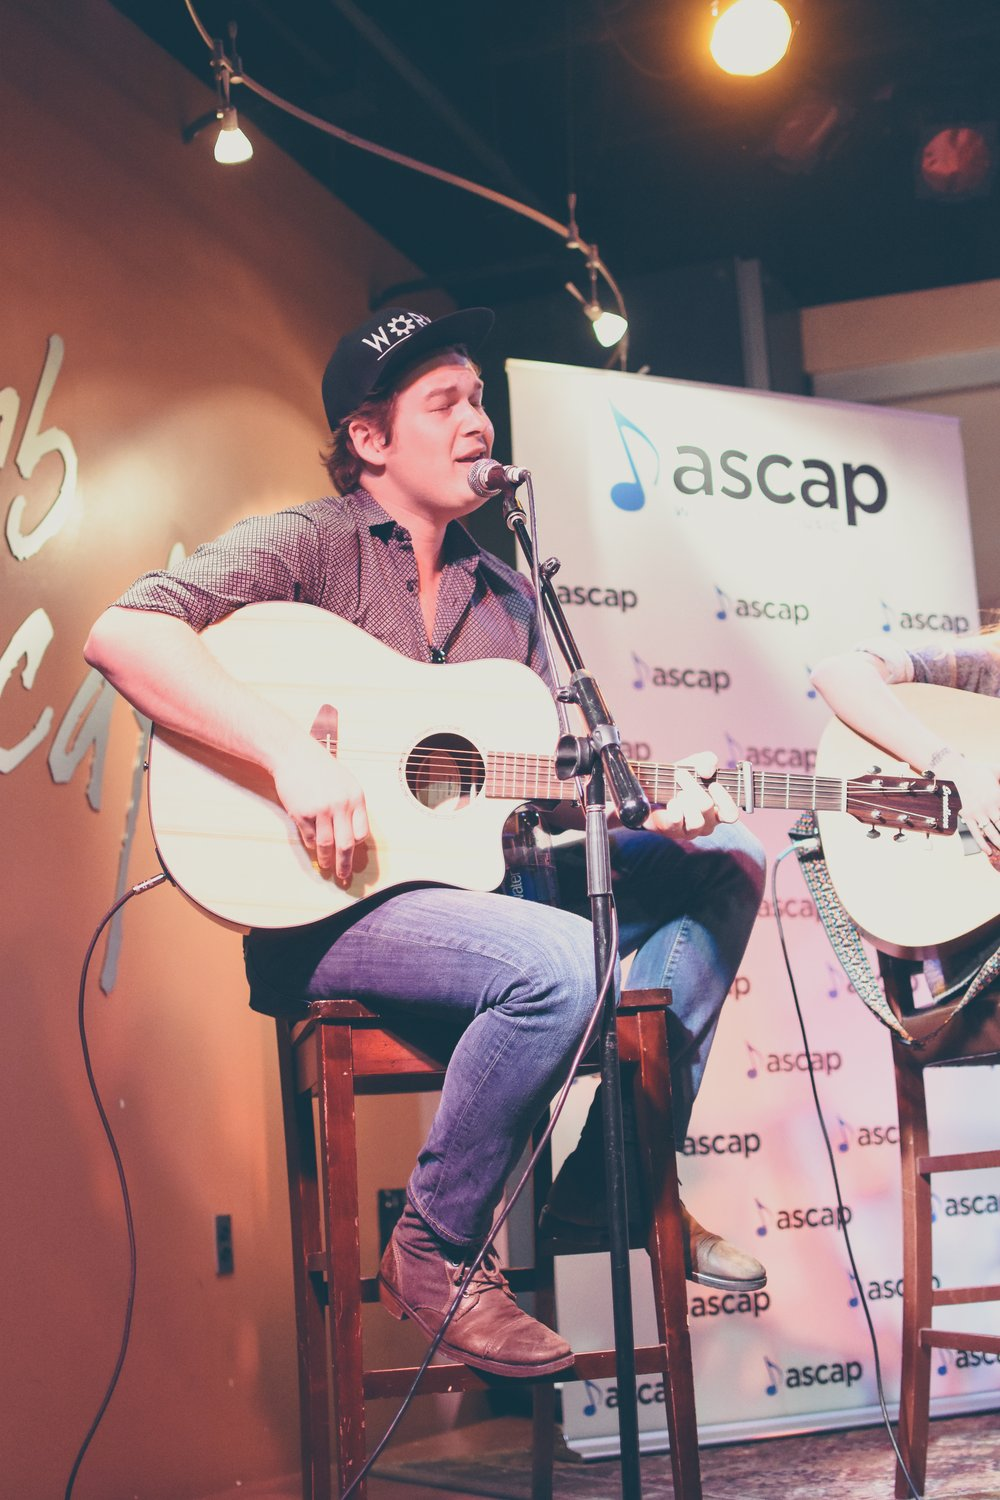 11102015-ascap-writers-night-8_22312175004_o.jpg